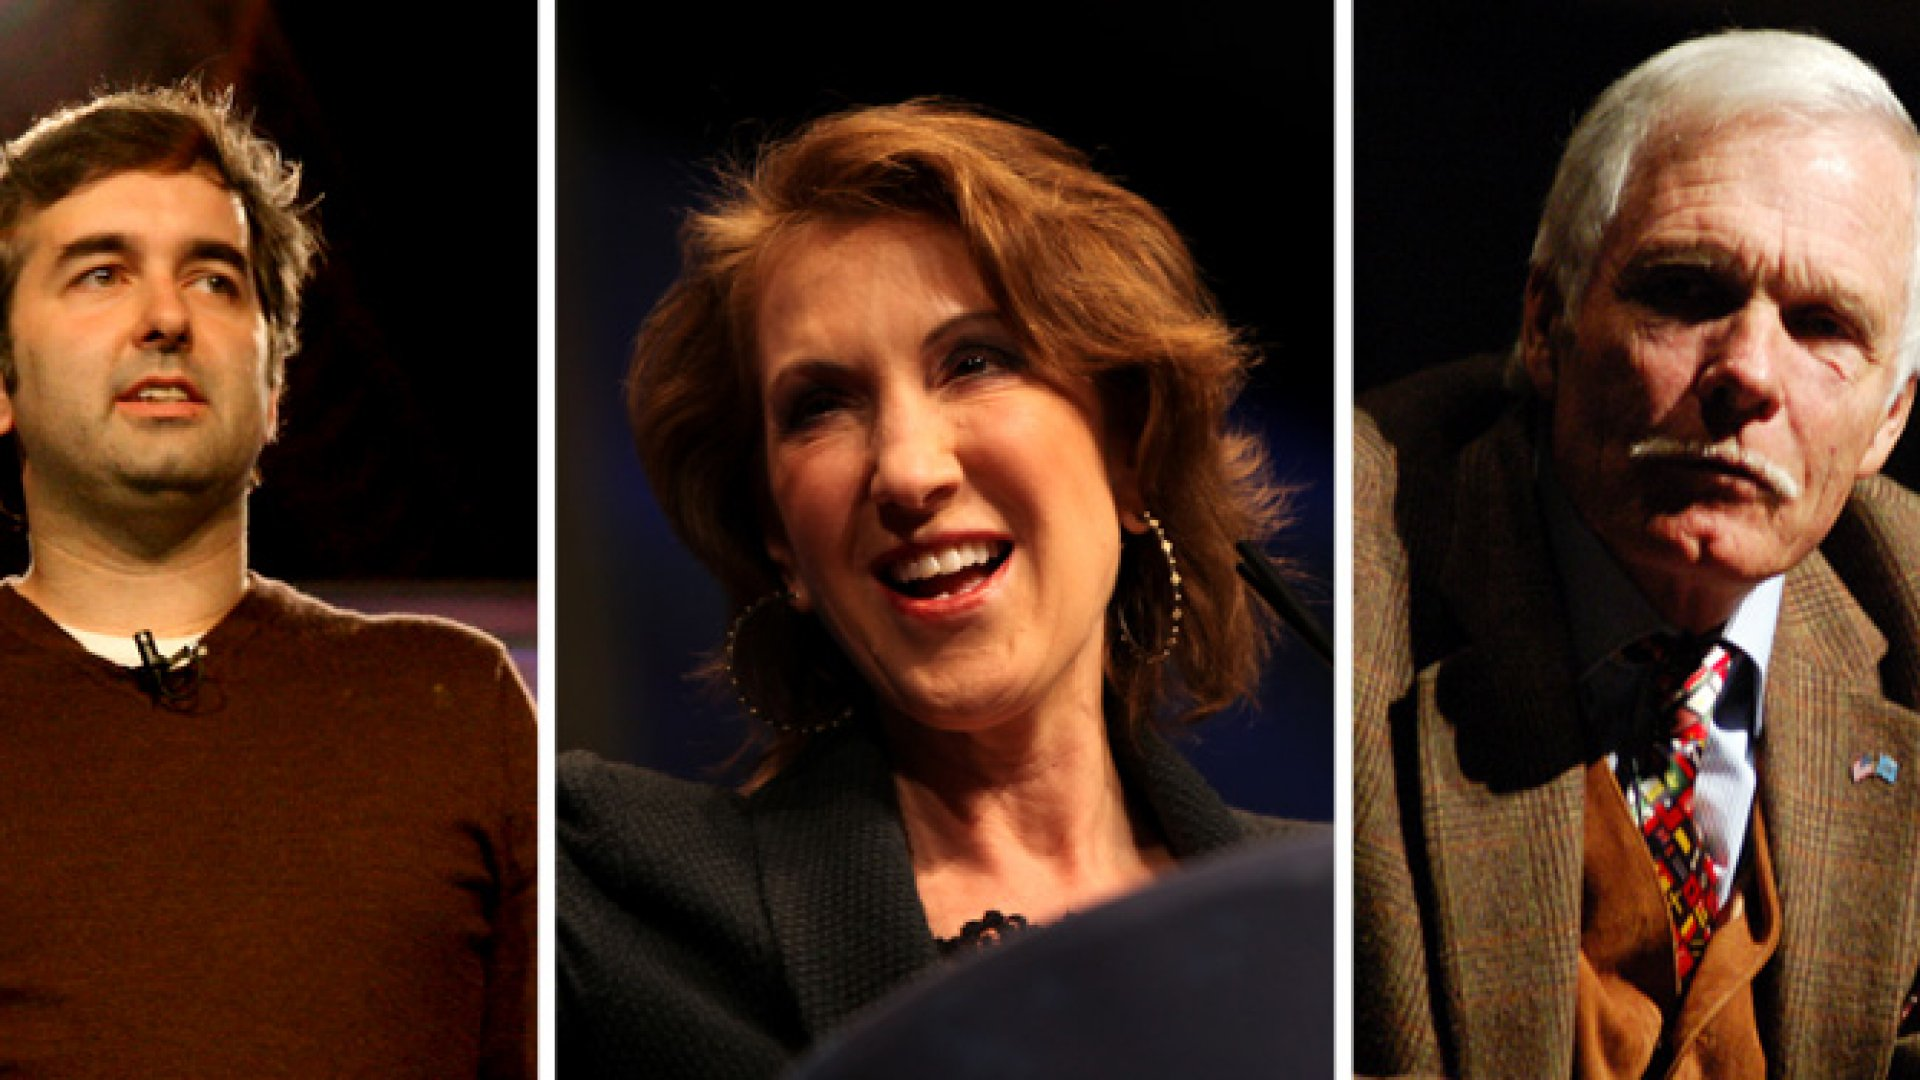 From left to right: Business leaders Chad Dickerson, Carly Fiorina and Ted Turner all have liberal arts degrees.